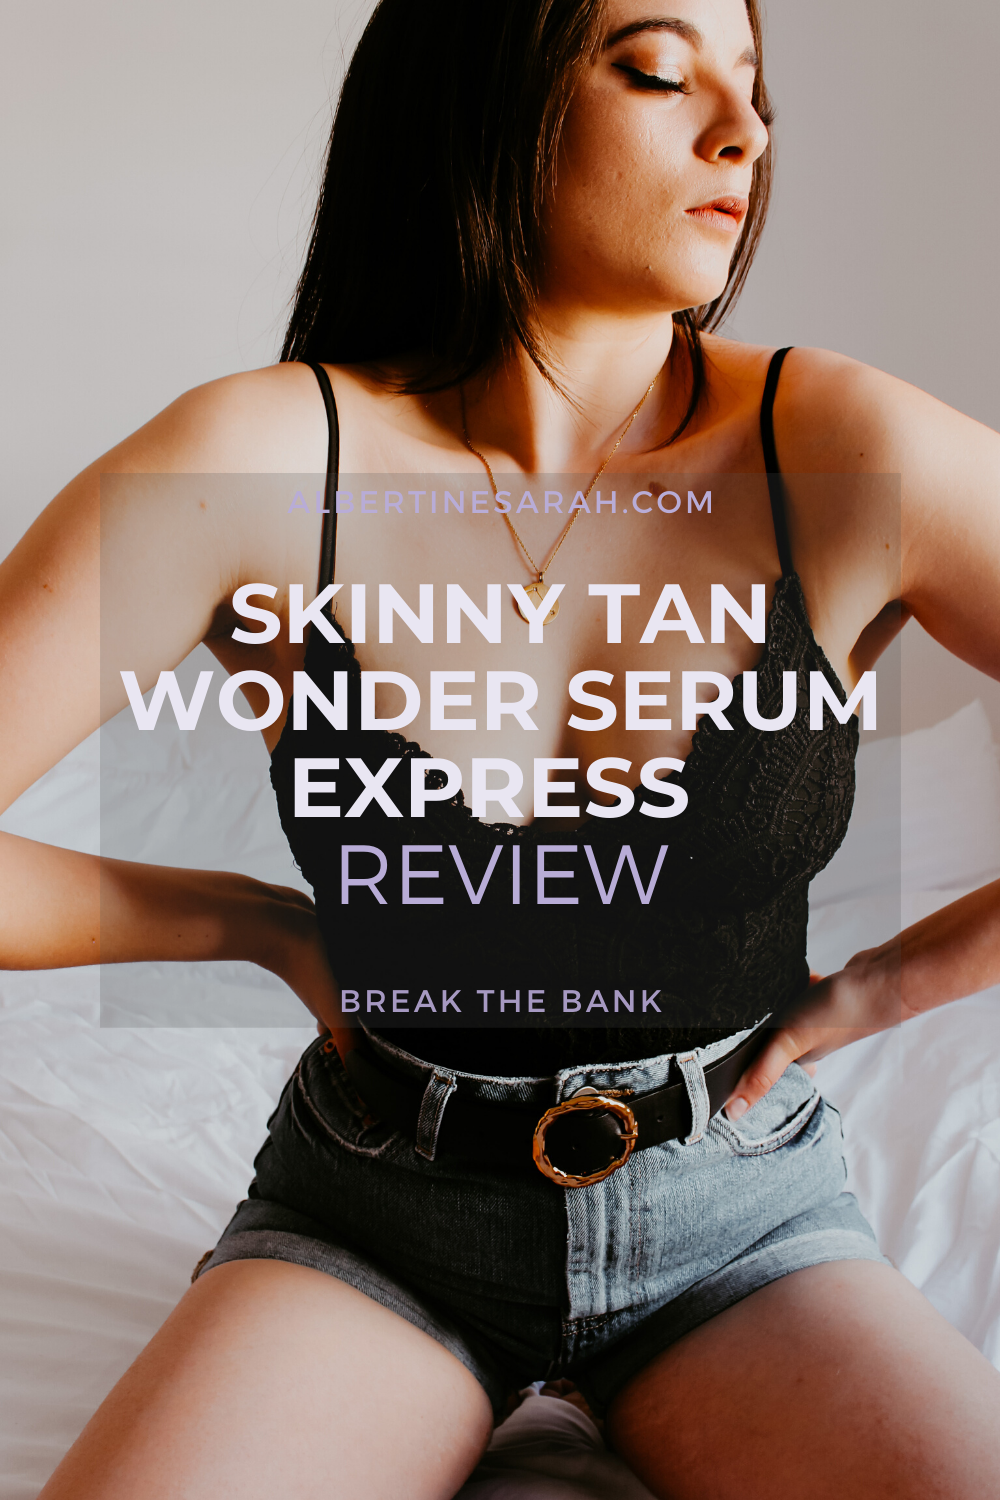 Skinny Tan Wonder Serum Pinterest